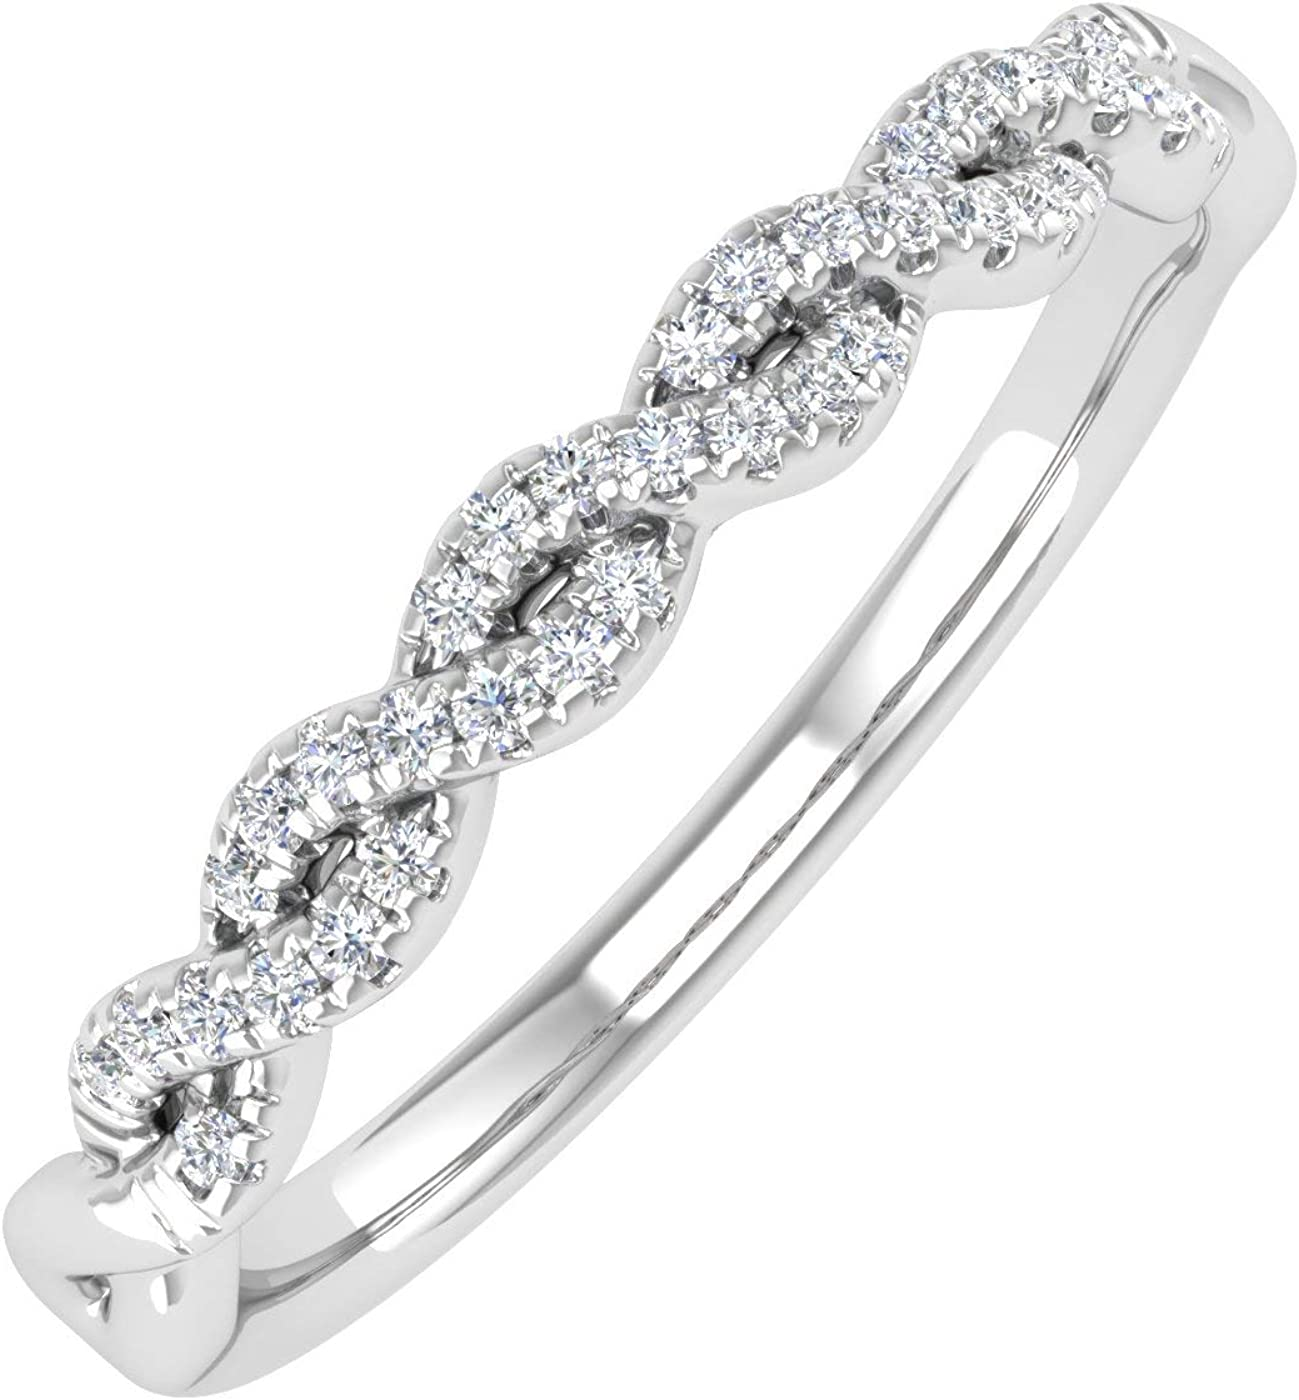 1/10 Carat Twisted Diamond Wedding Band Ring in 10K Solid Gold - IGI Certified